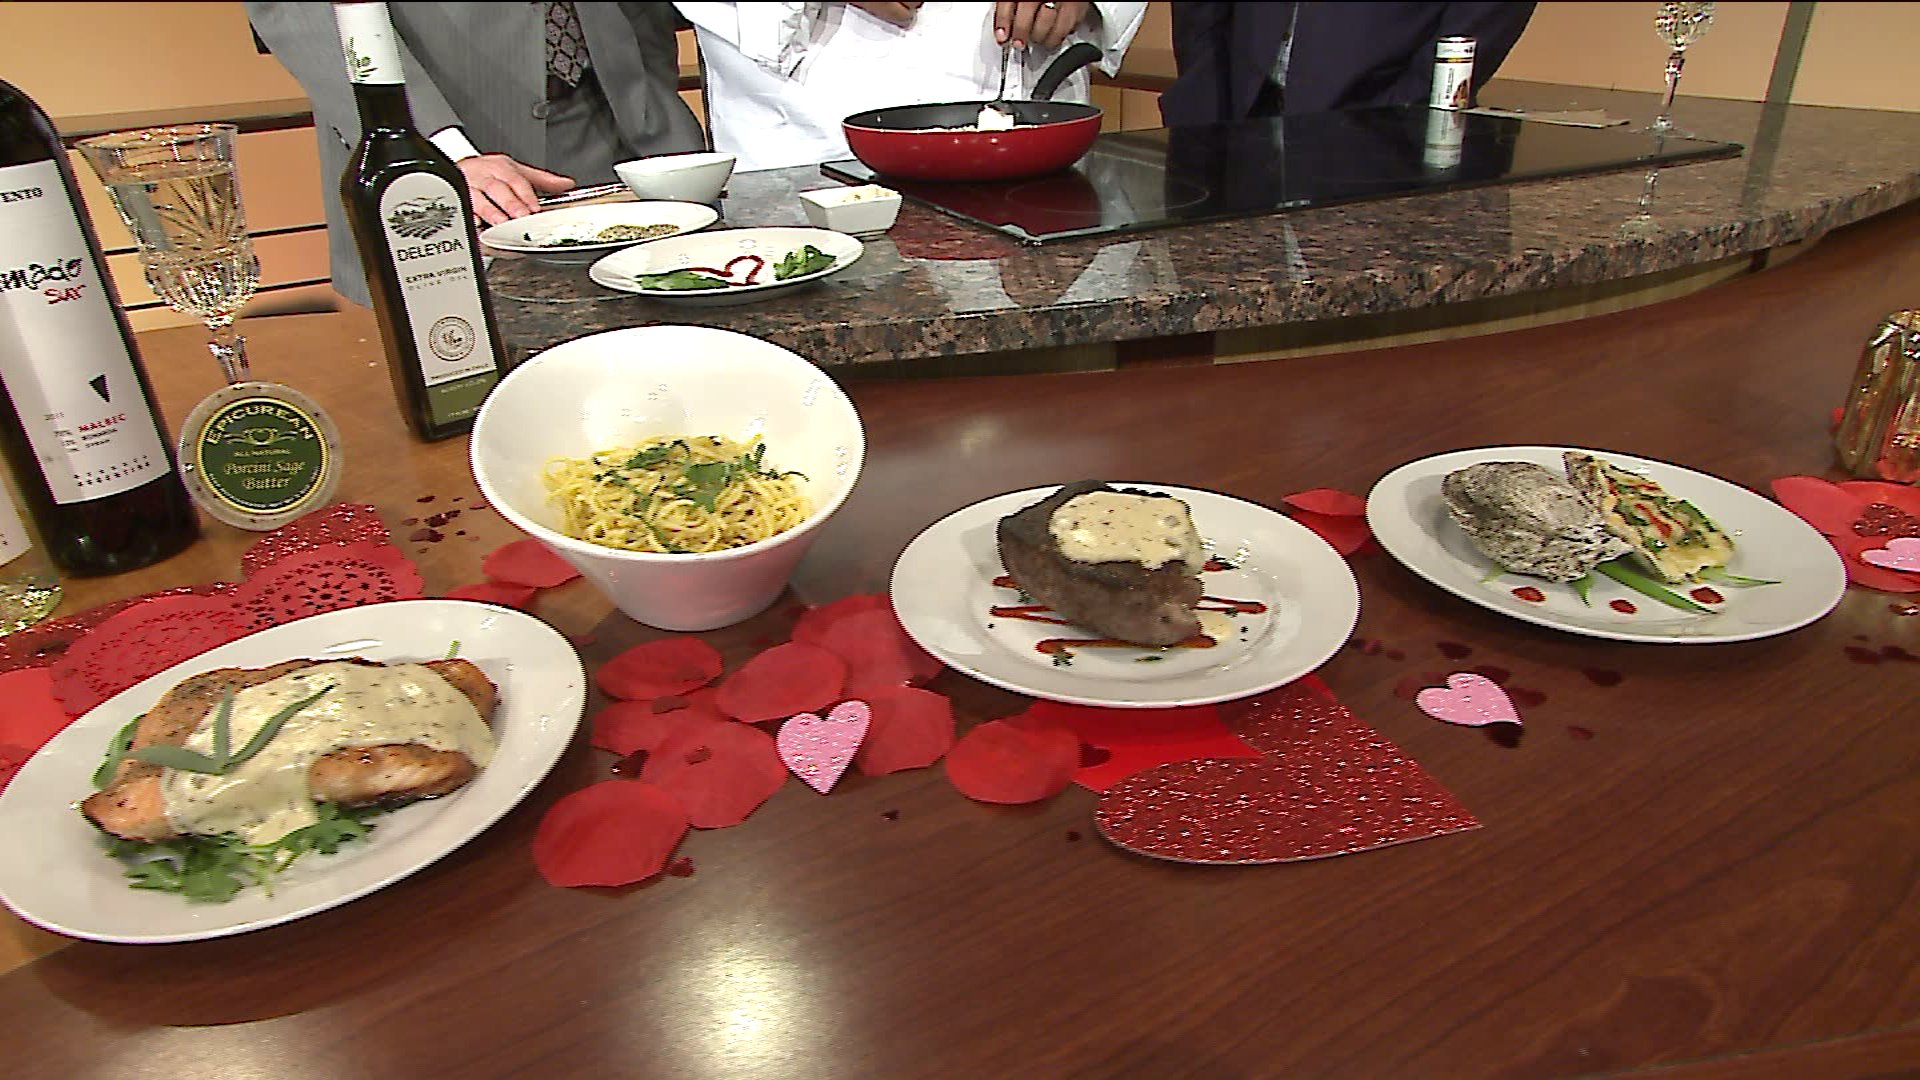 How To Make A Valentine's Day Dinner With Aphrodisiacs